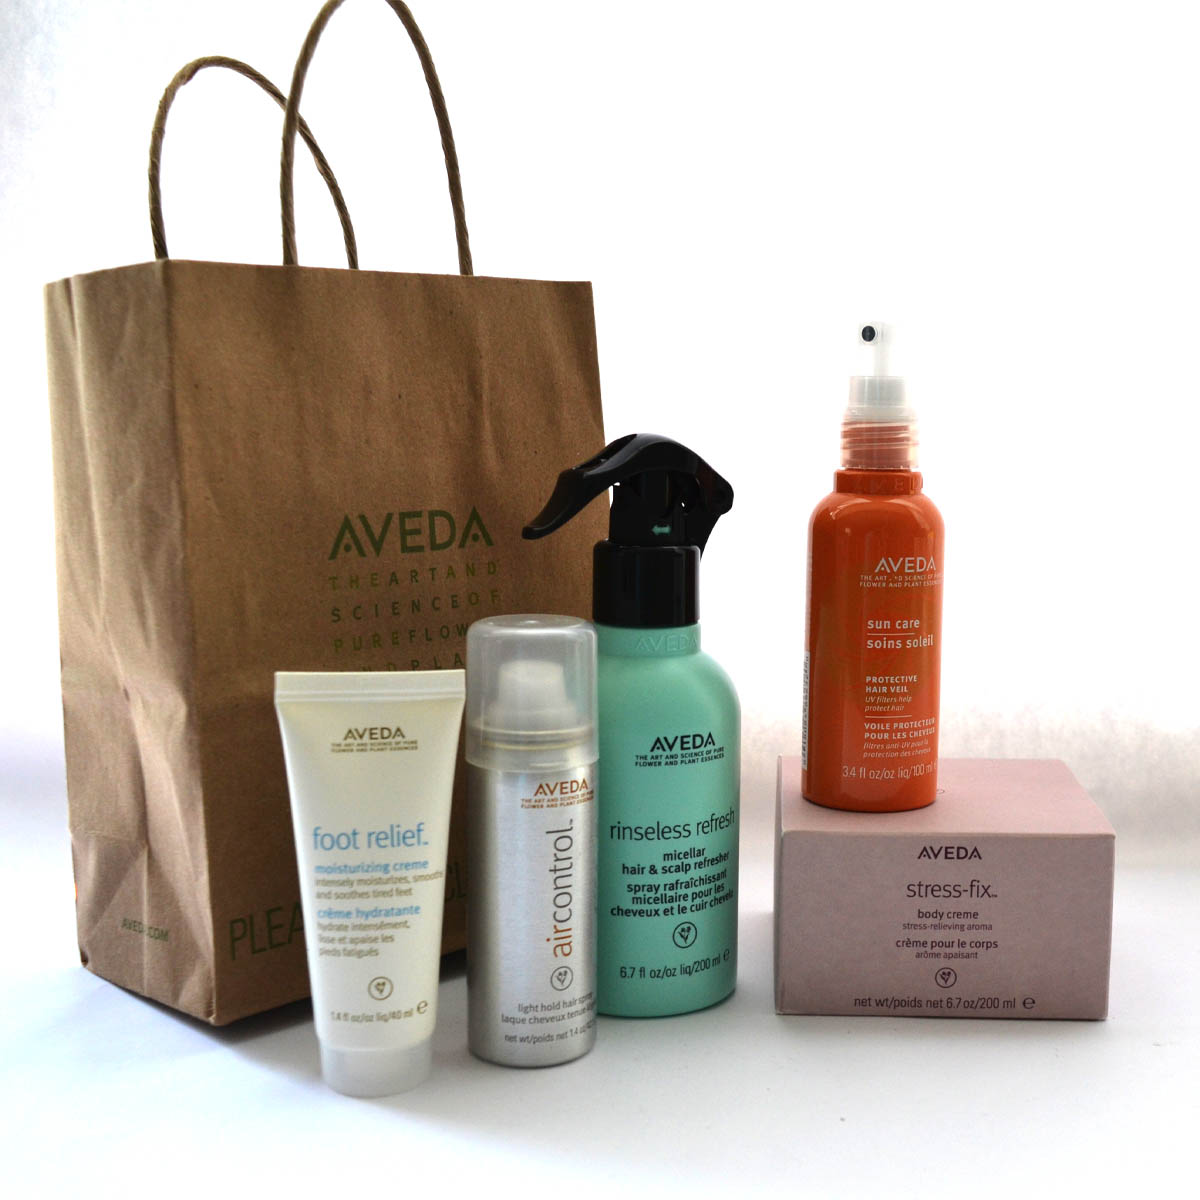 Aveda Hair & Skin Care - Roberto Hostins has generously provided this selection of Aveda beauty products featuring foot relief moisturizing creme, sun care hair veil, air control lightly holding hair spray, rinse less hair refresher, and stress-fix body creme. Be sure to visit Roberto at his NEW second location on Neighborhood Rd. in the WMH Architects building.Retail Value: $140.00